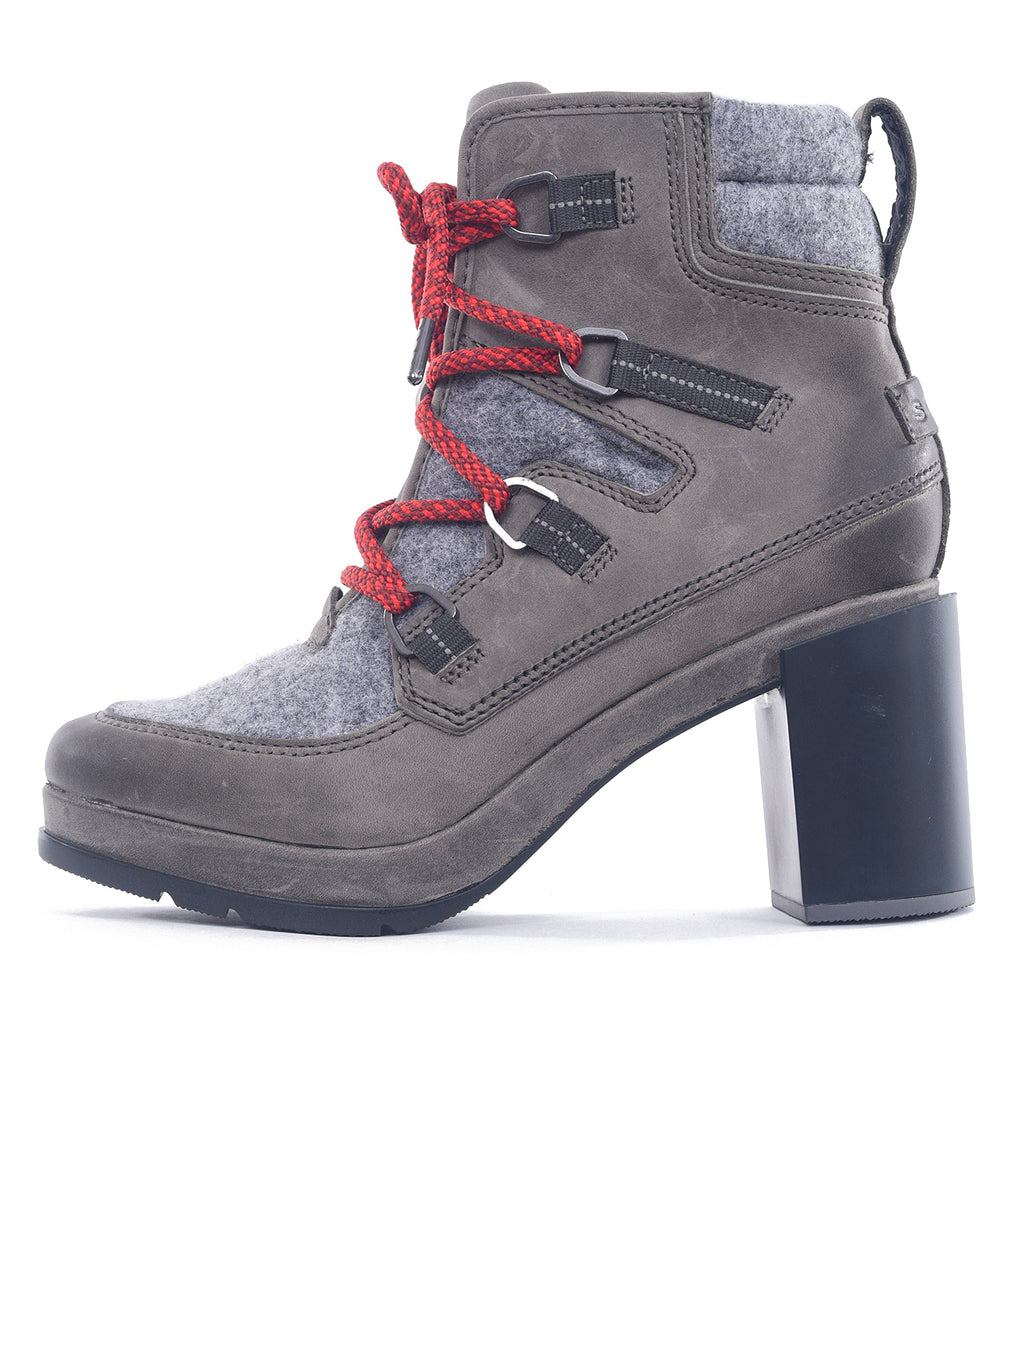 Sorel Blake Lace Boot, Quarry Gray